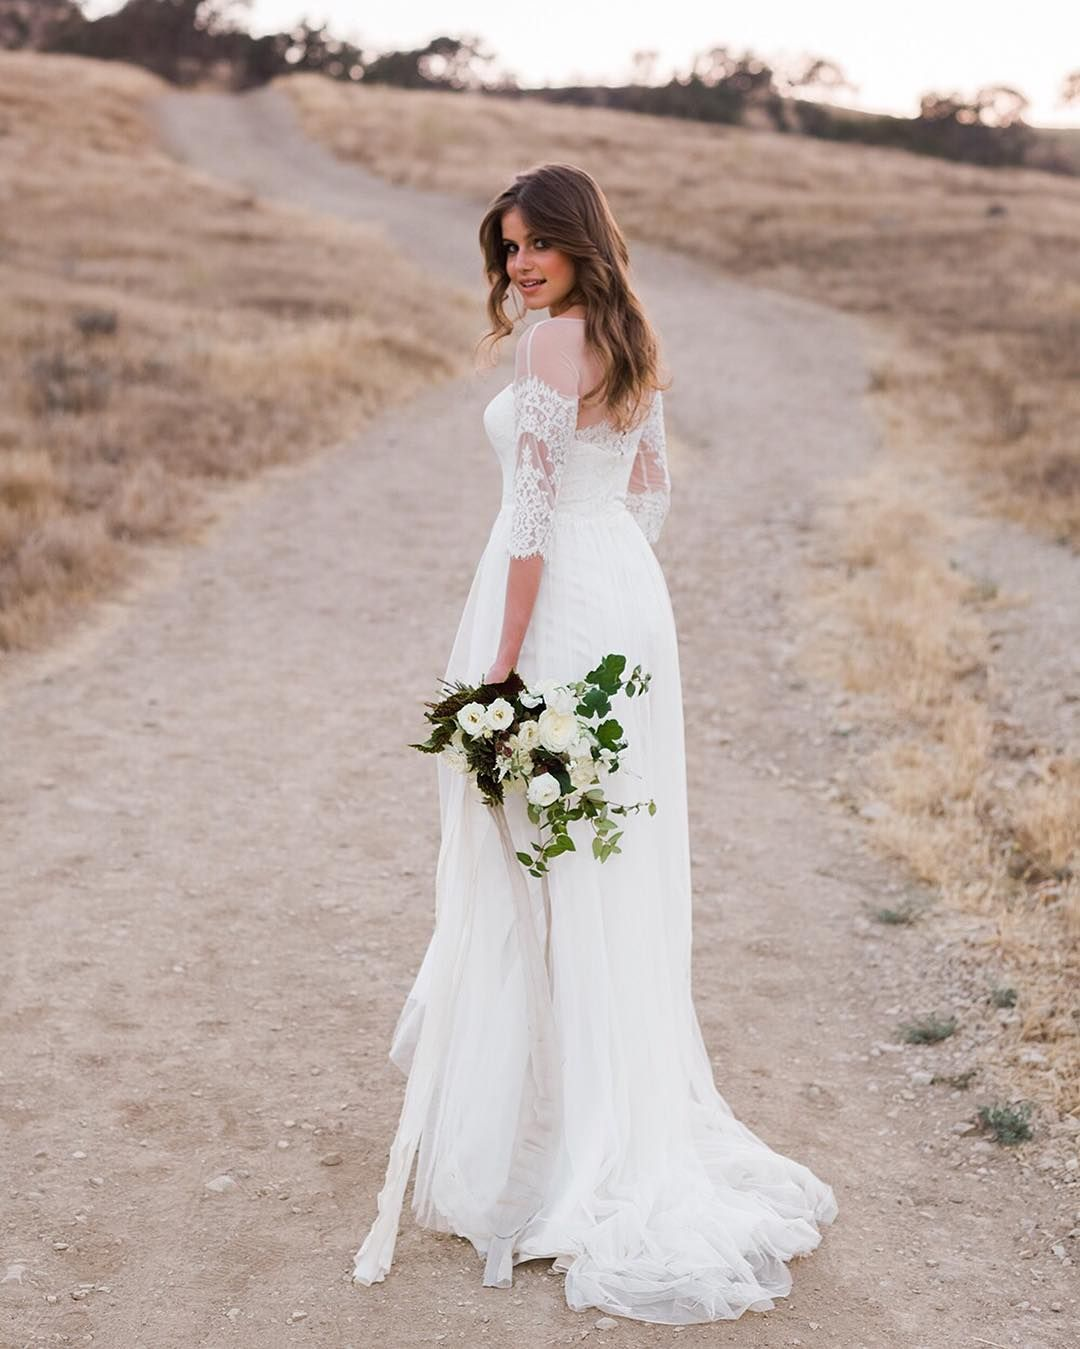 For the bohemian inspired bride a long flowing aline dress with